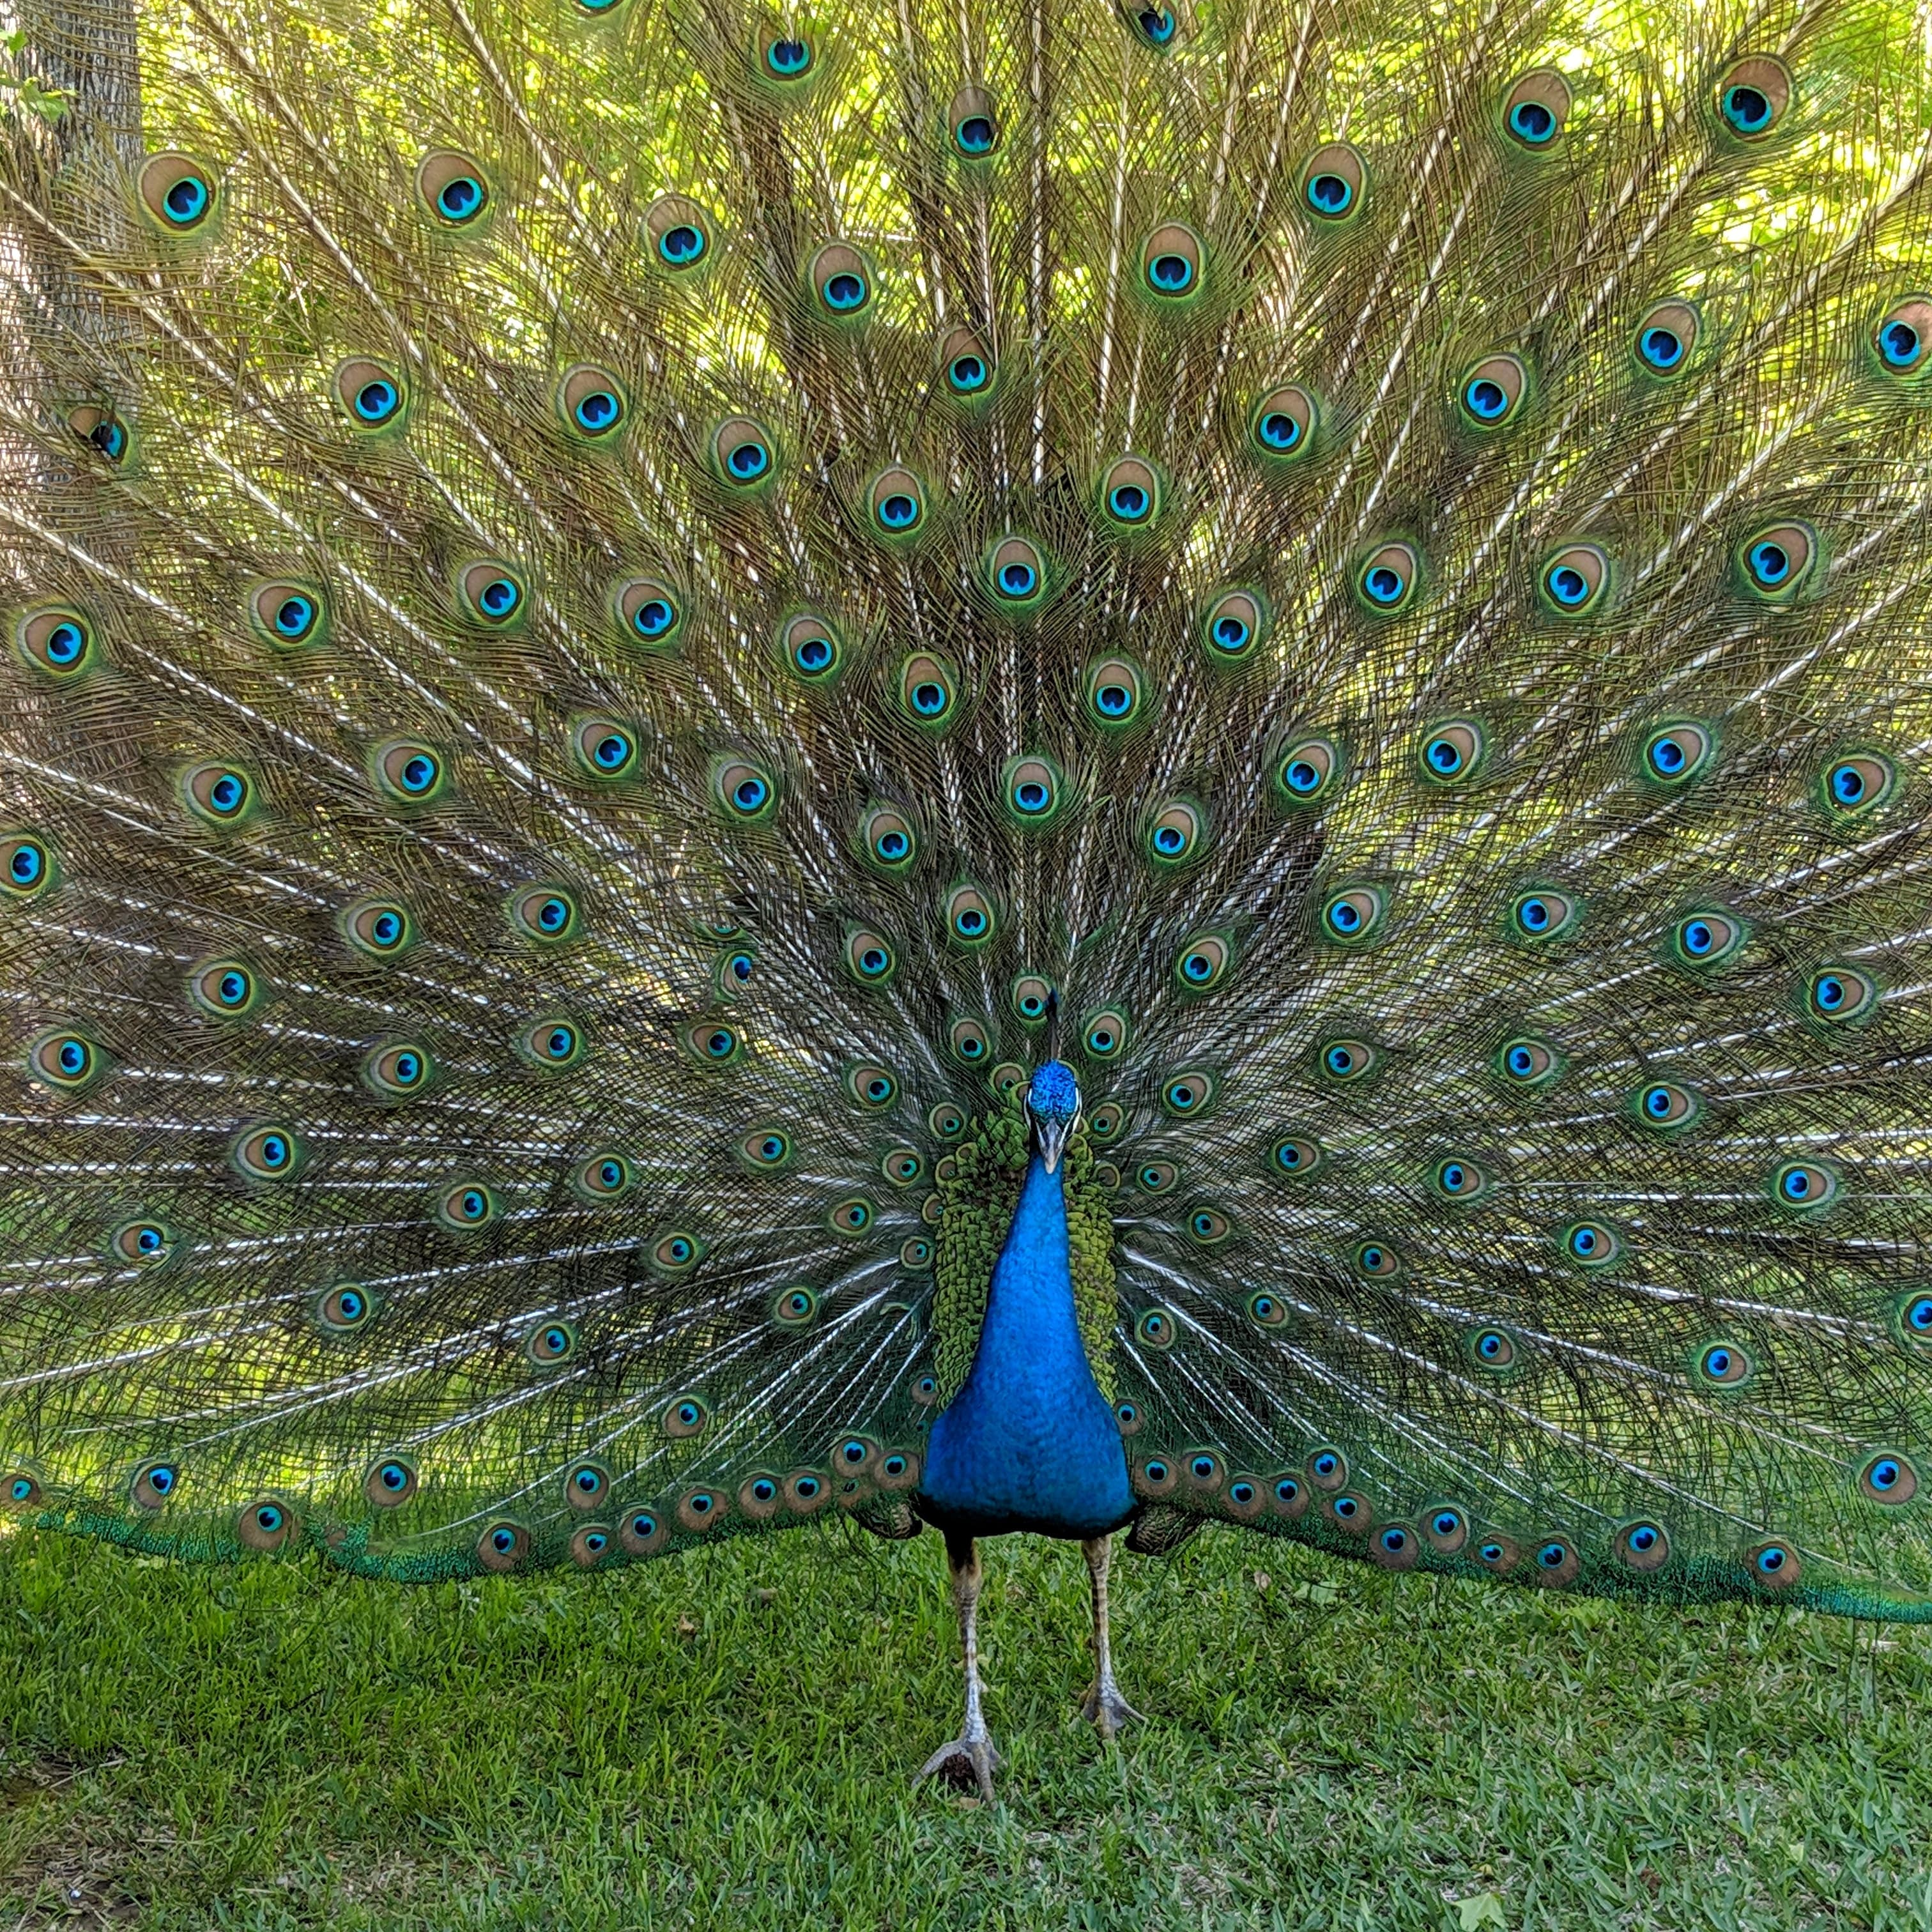 New Sighting Of Roaming Peacock Could There Be 2 The Trussville Tribune